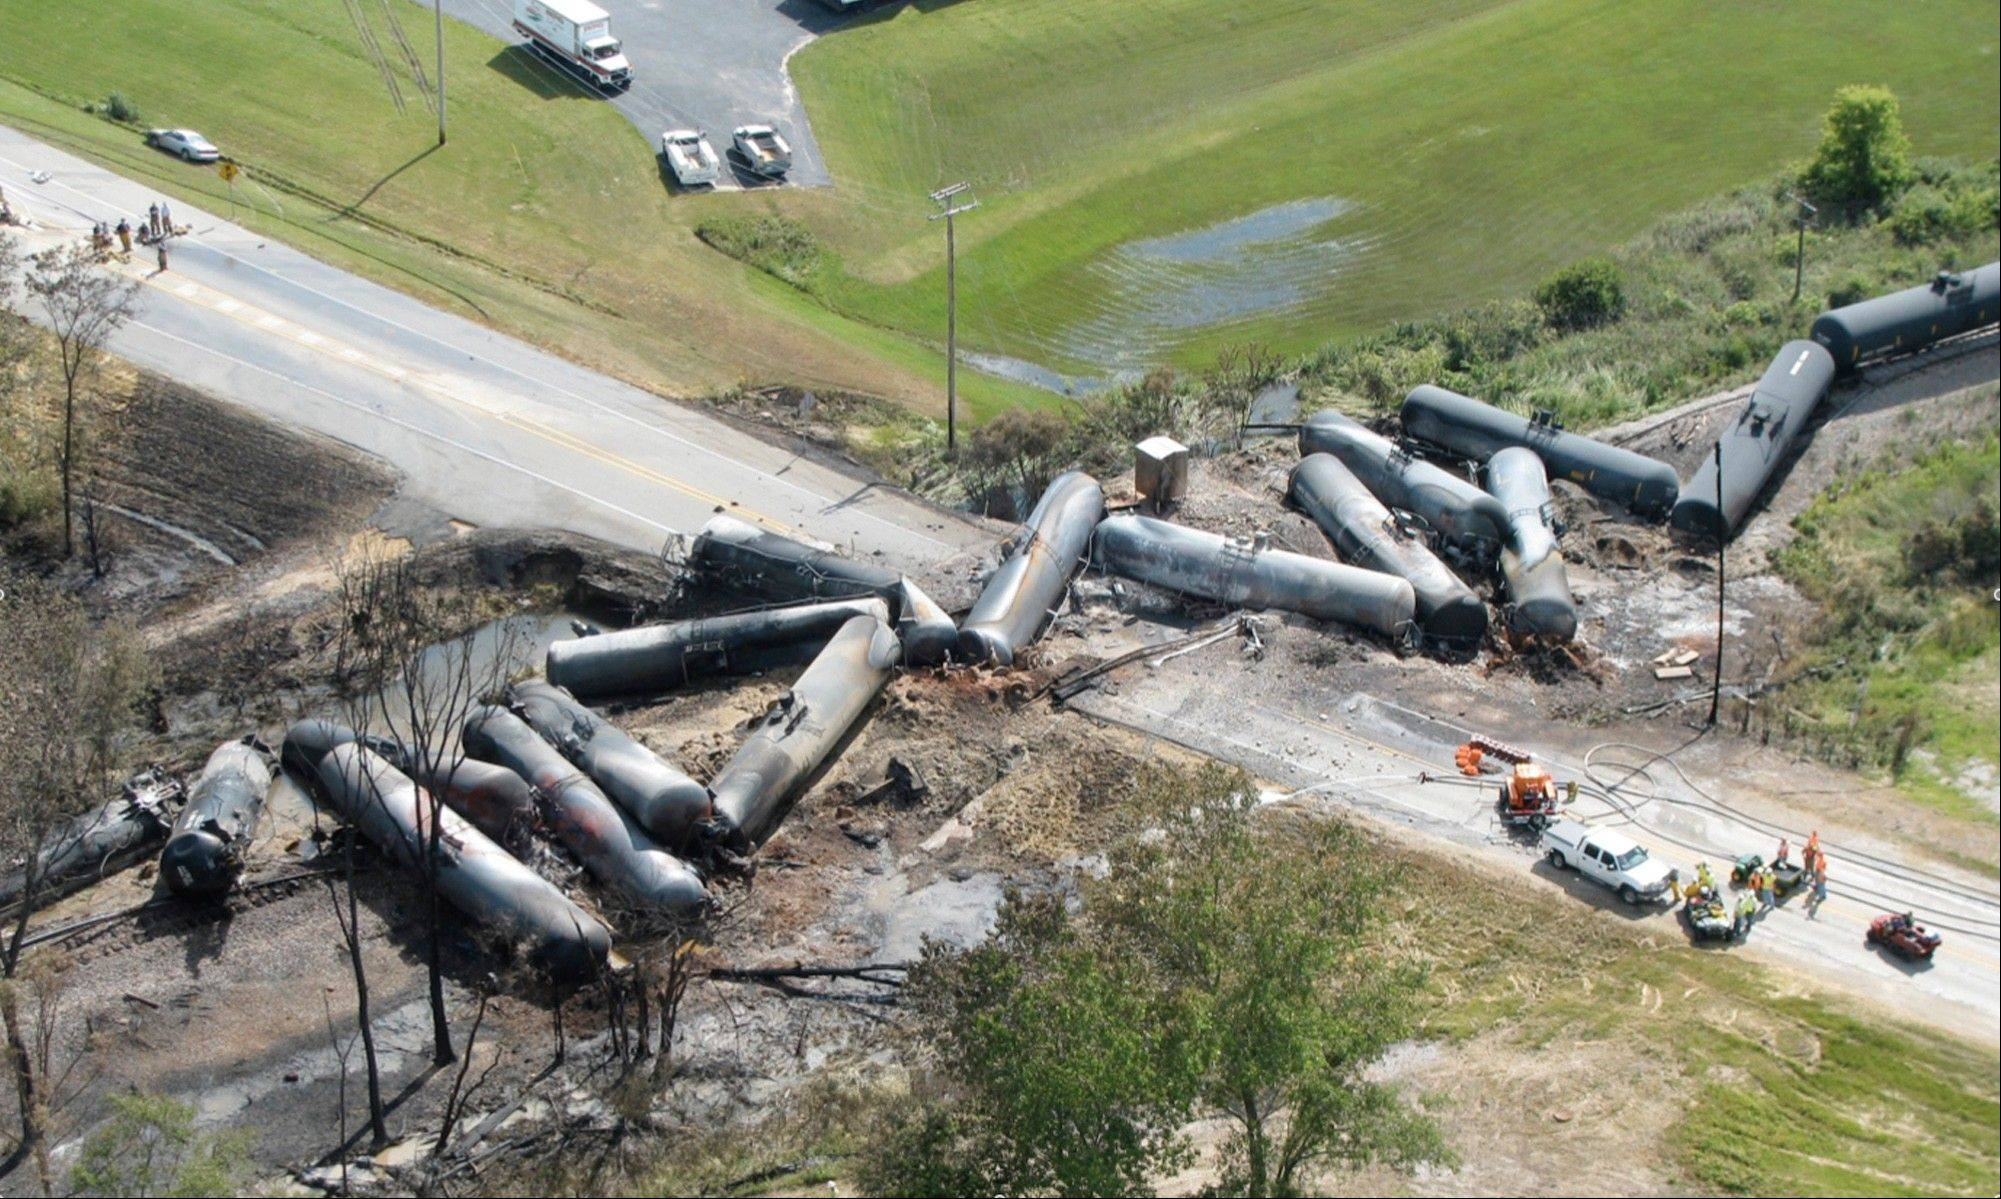 A June 20, 2009, derailment of a freight train carrying et